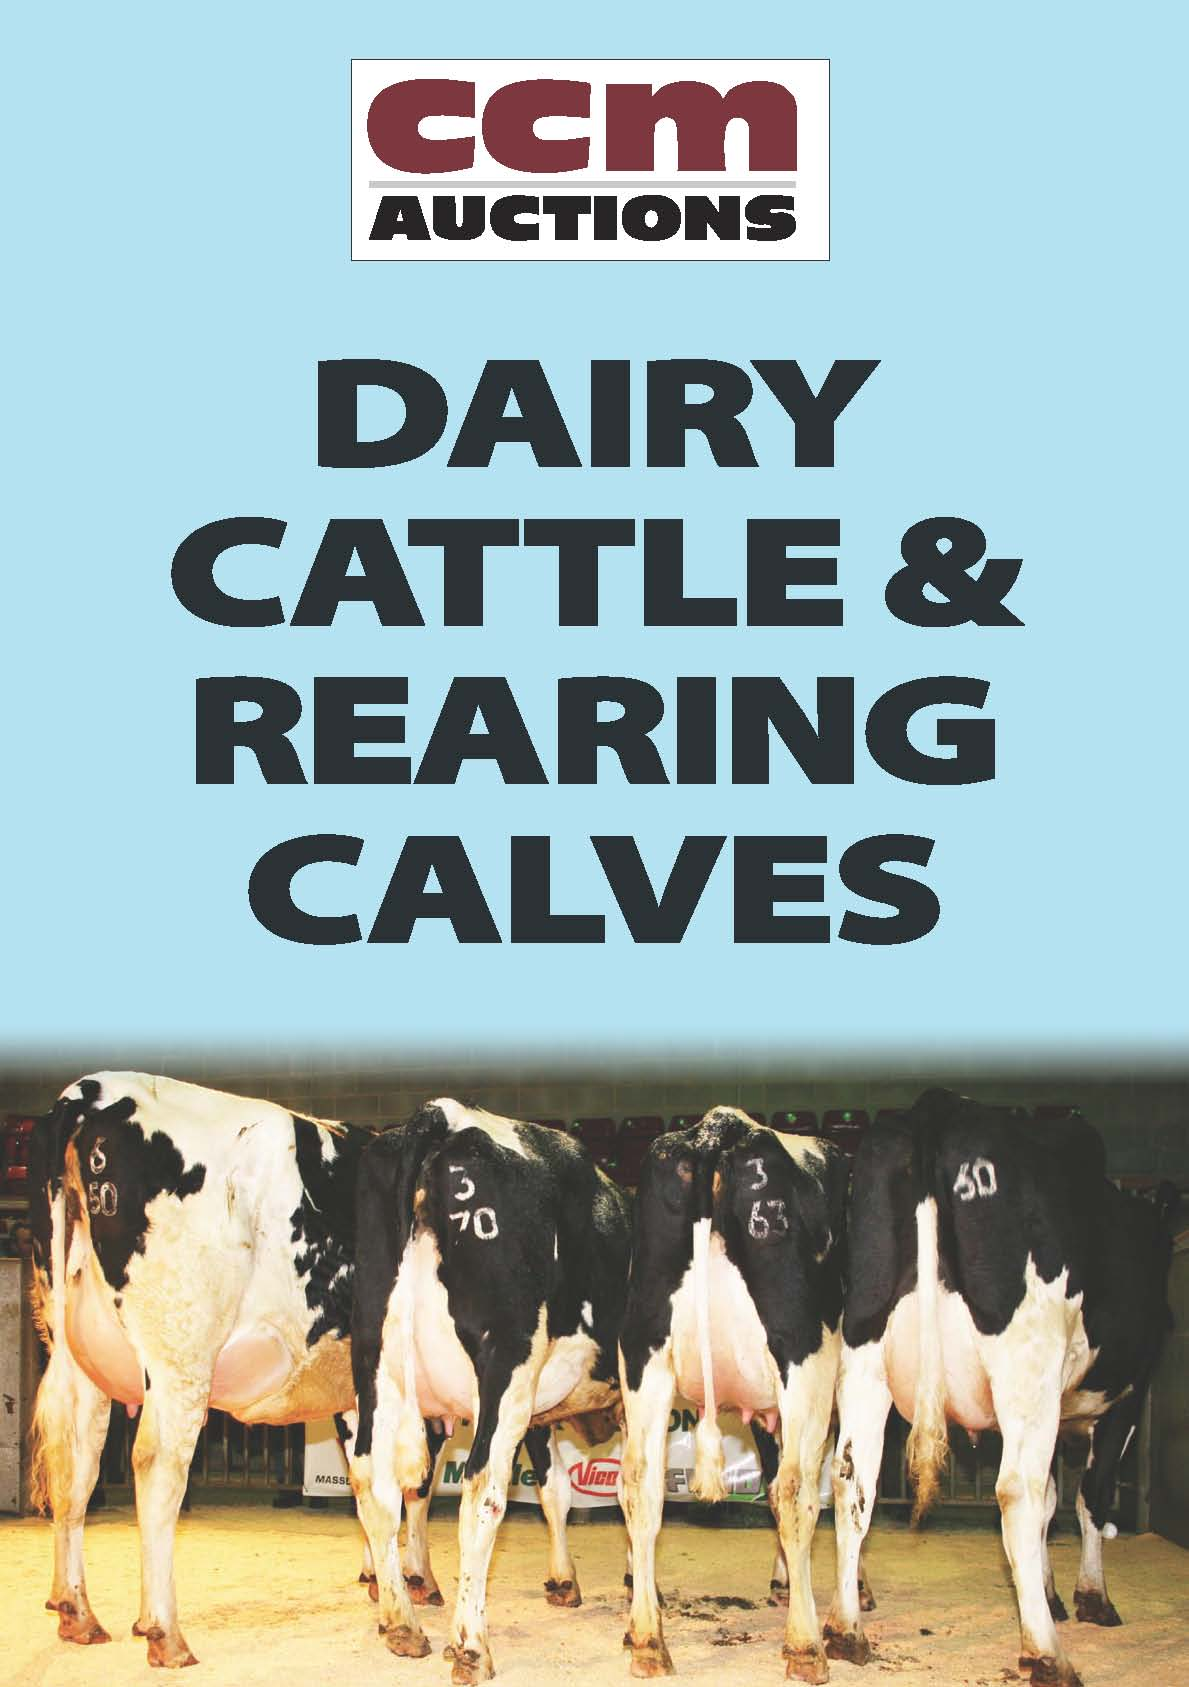 MARKET REPORT - MONDAY 16TH MARCH 2015 CALVES